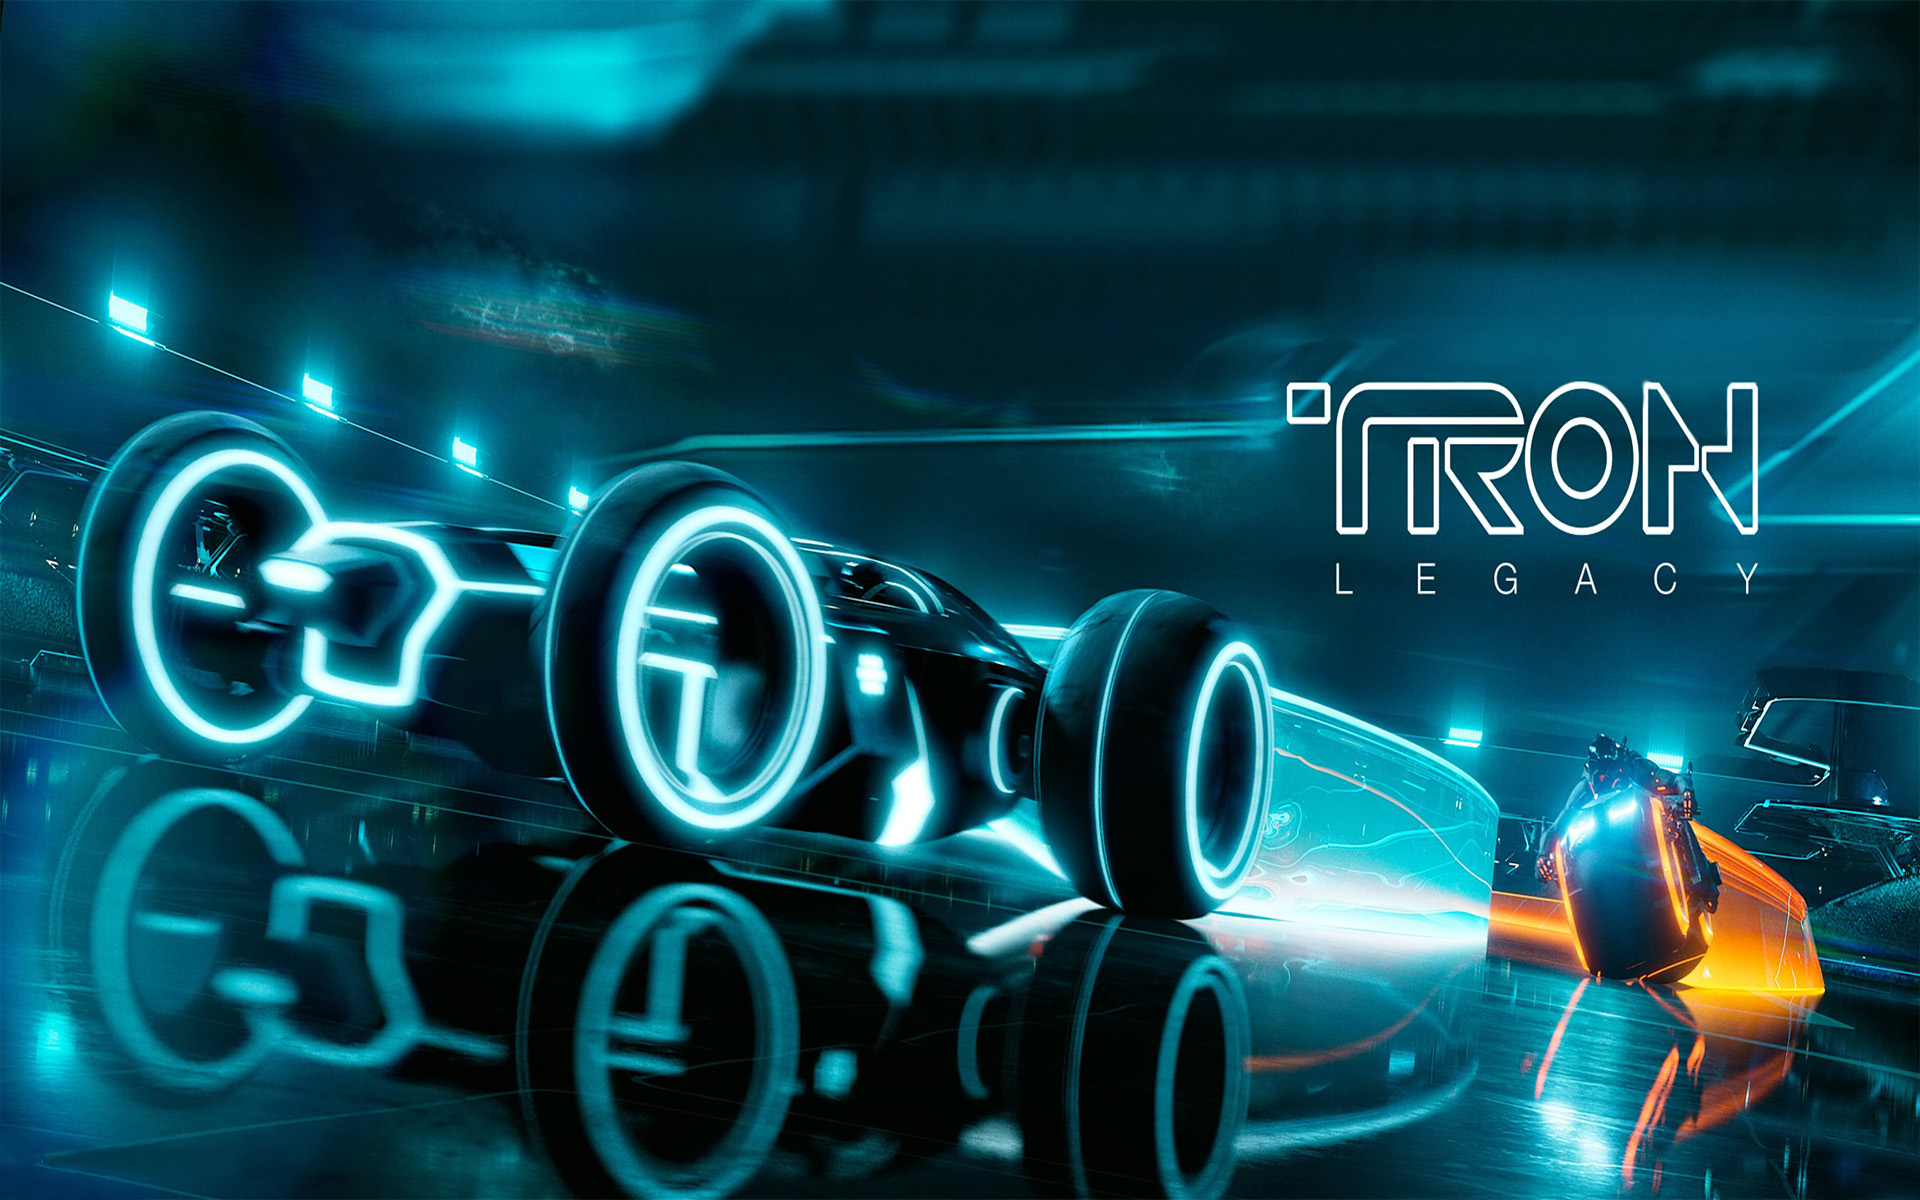 Over 160 TRON Legacy,